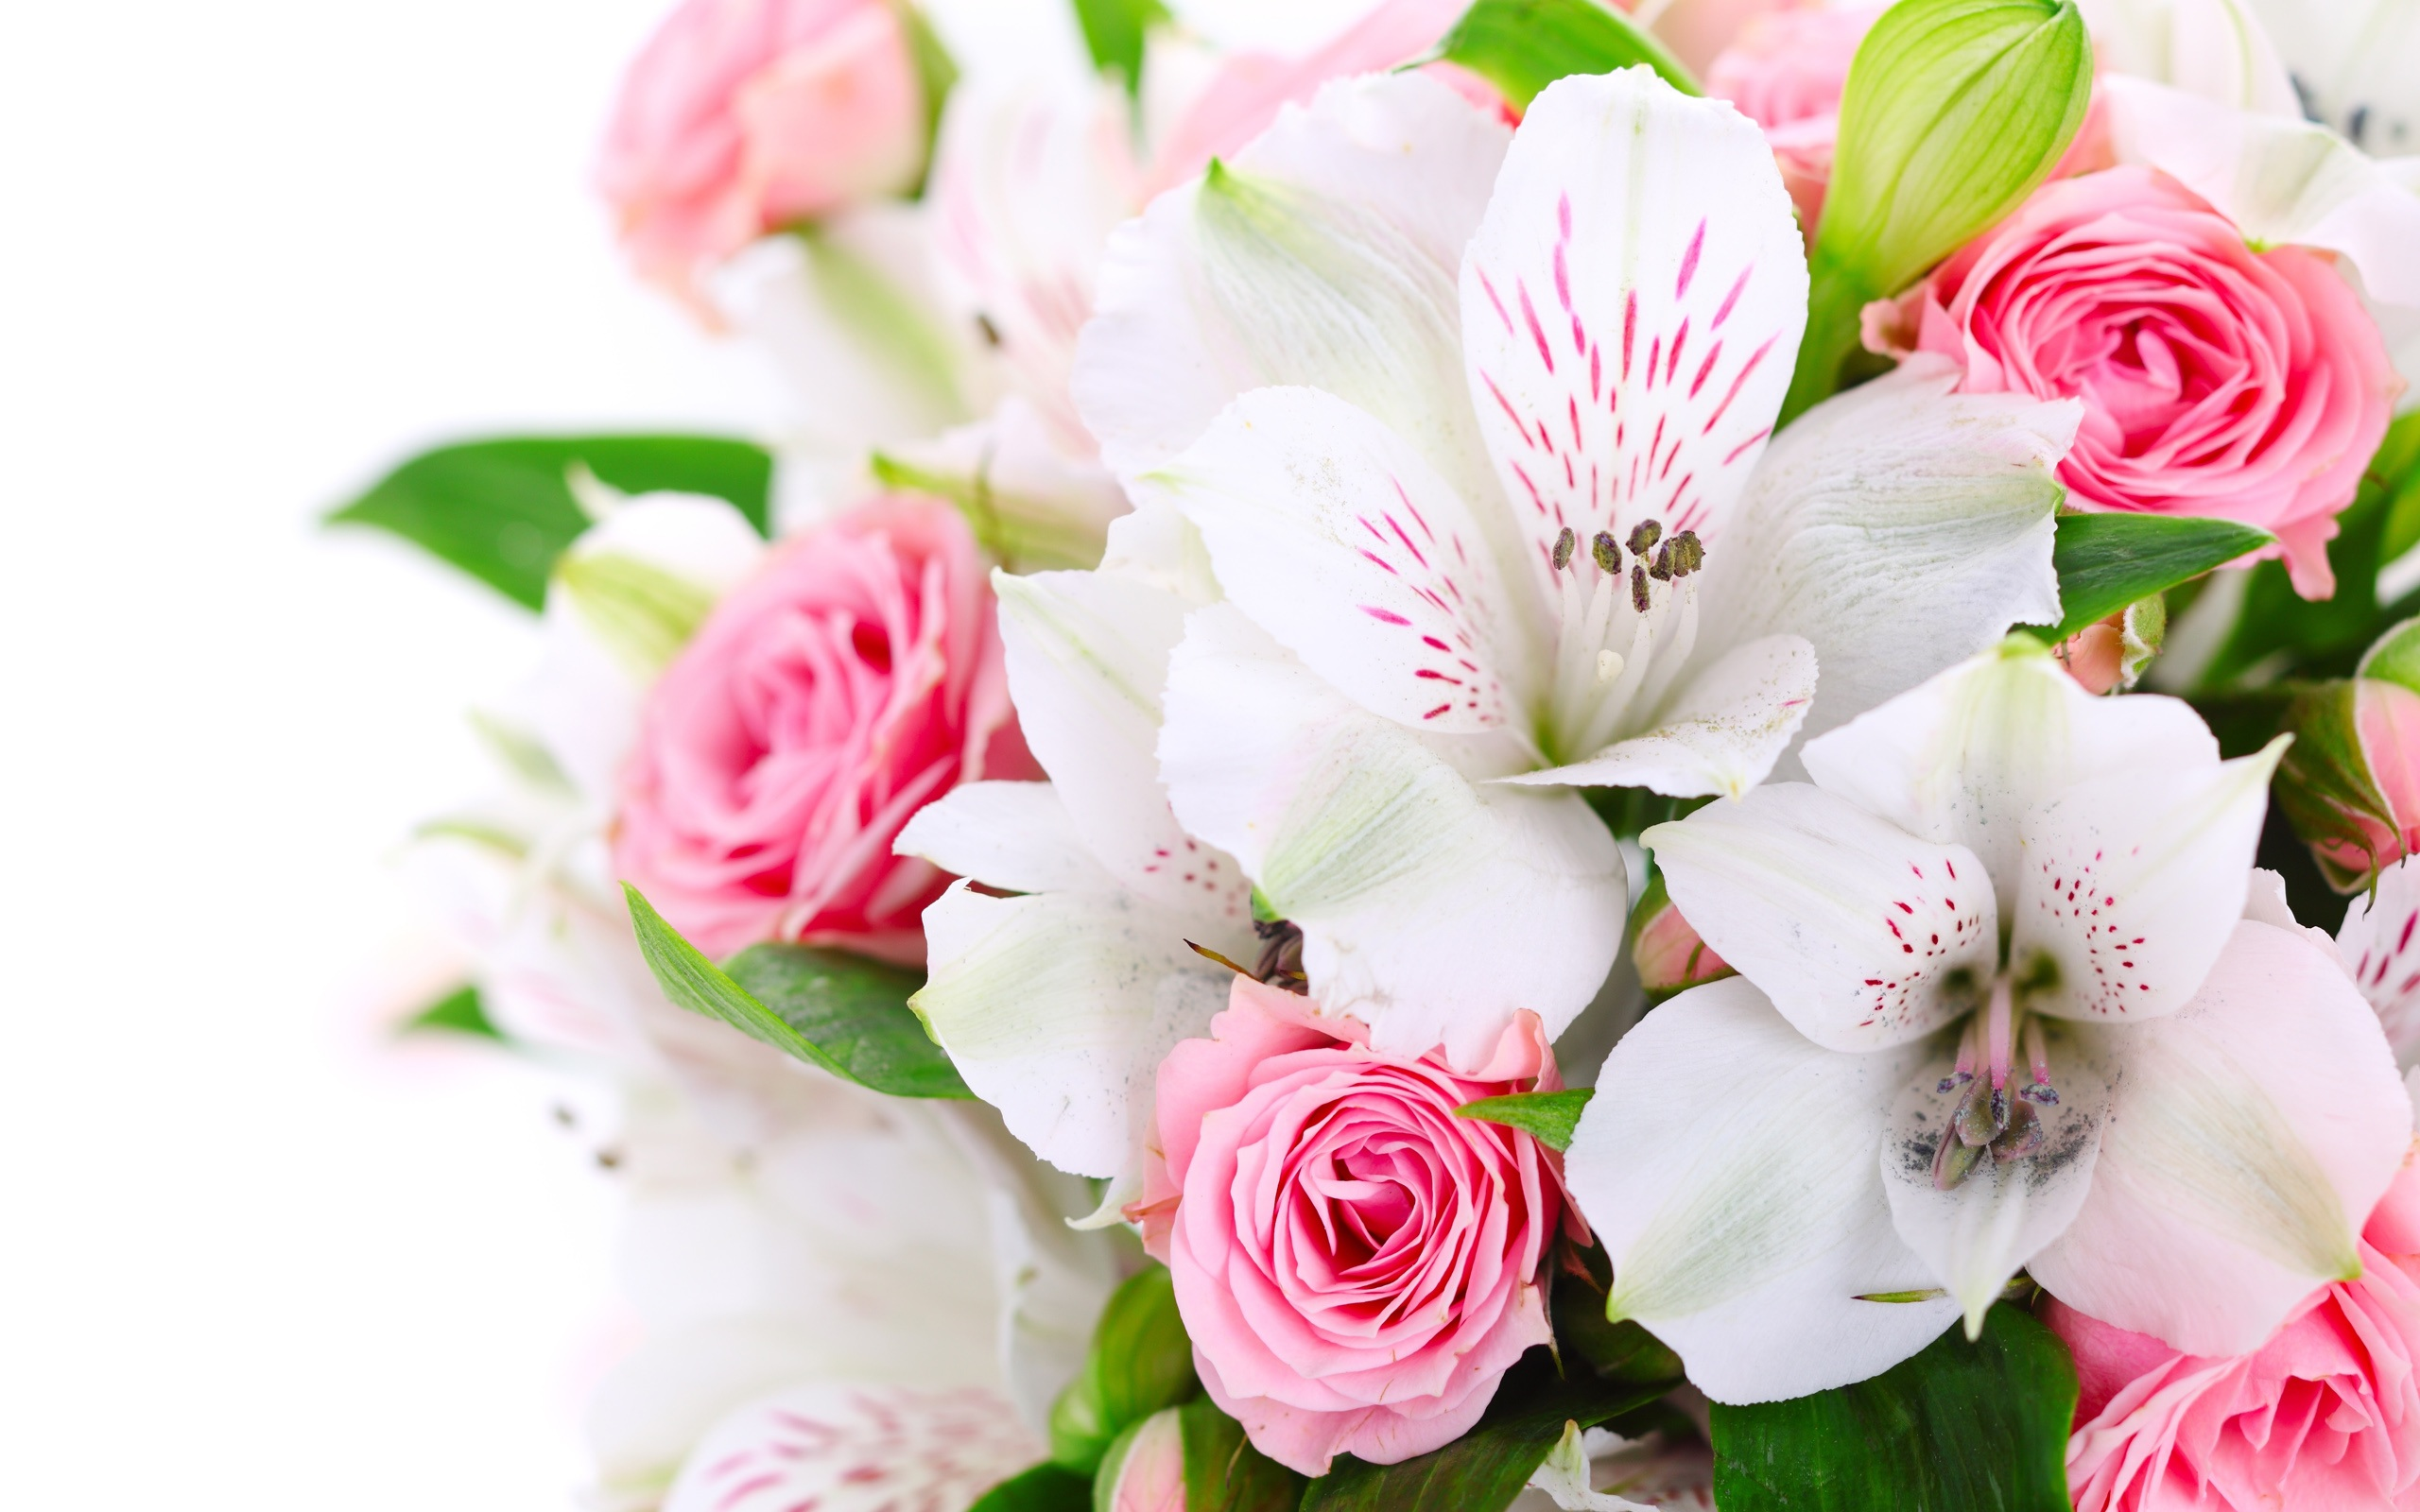 Wallpaper A Bouquet Flowers Pink Roses White Orchids 2560x1600 Hd